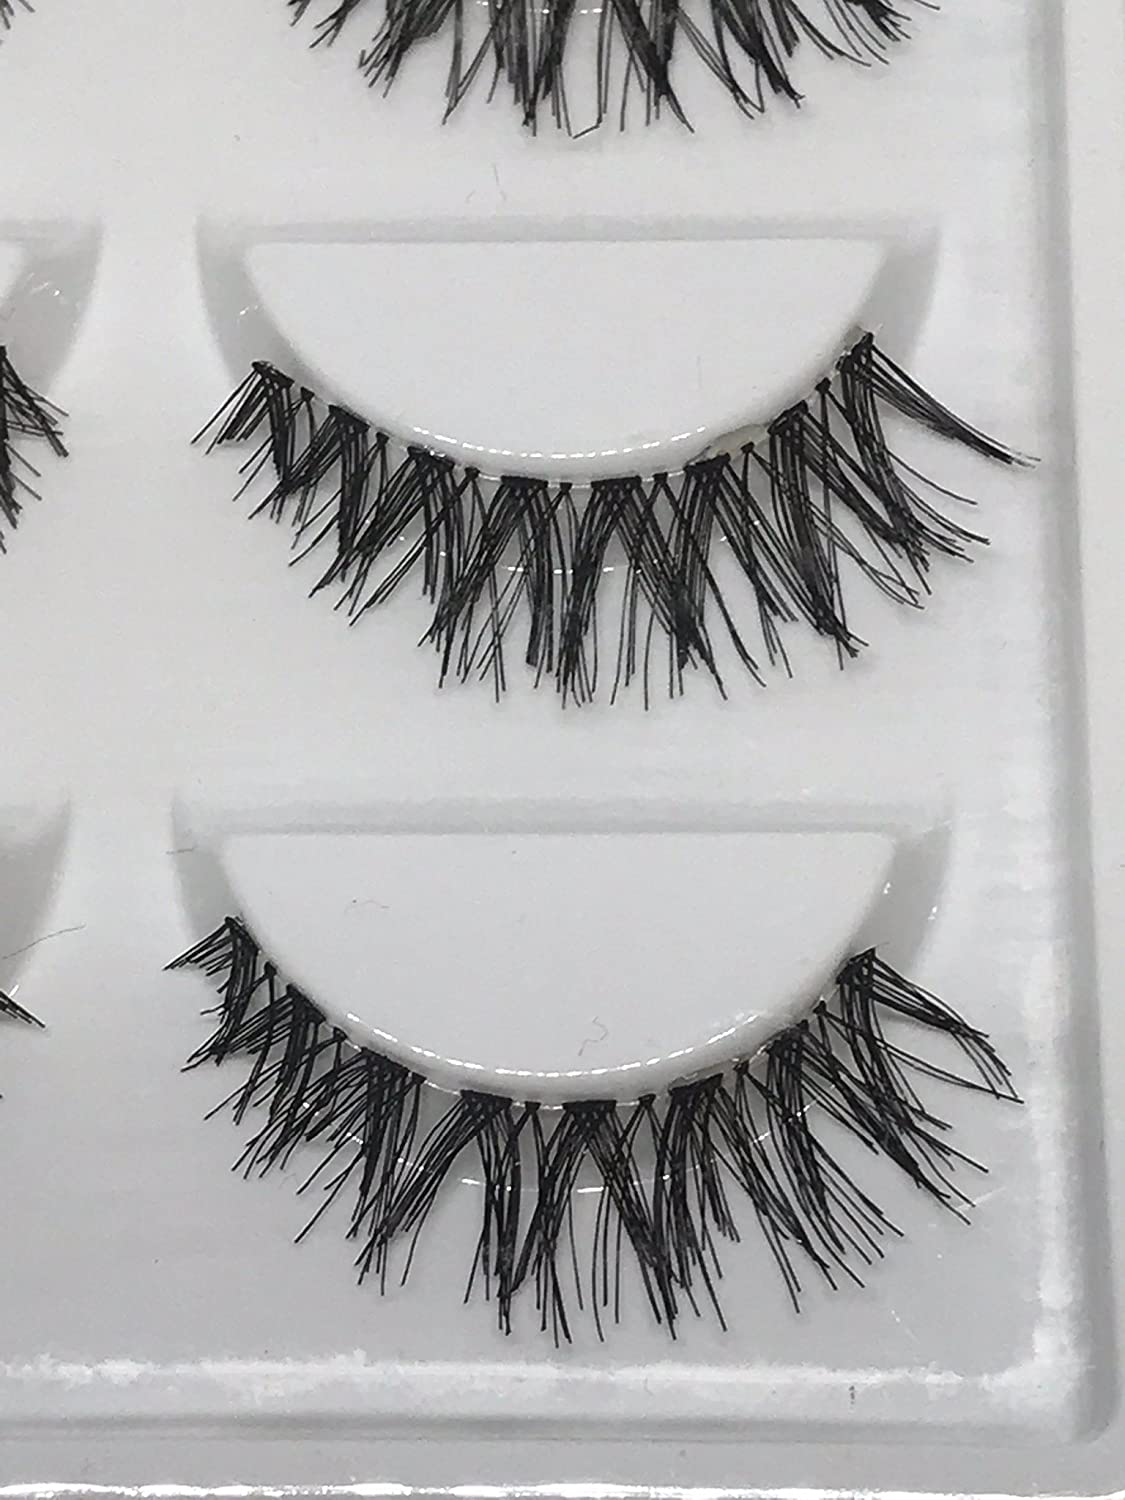 Amazon.com : Eyelashes False Ankaleca Natural Look Soft Handmade Lashes Reusable Extension : Beauty